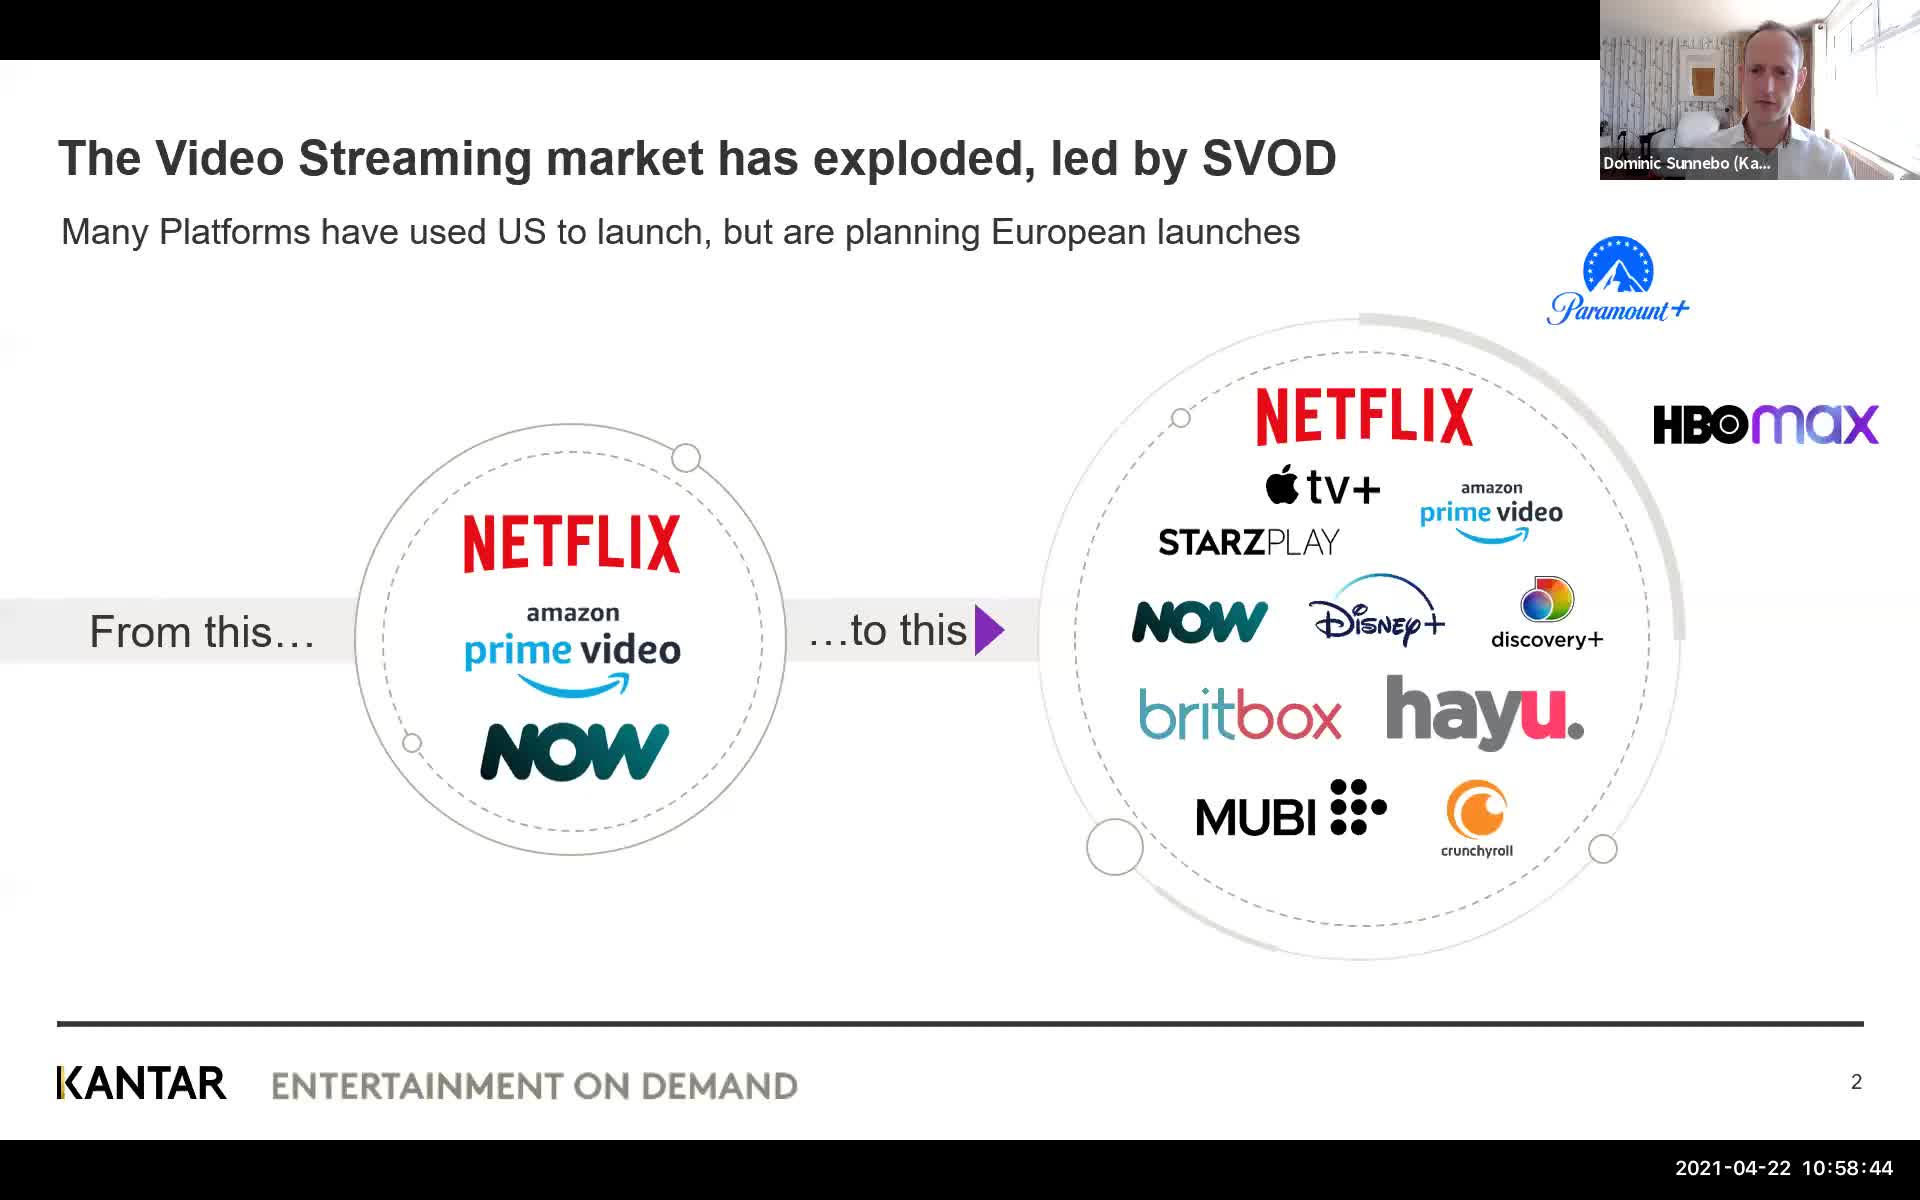 The Agile Streamer and the SVOD Explosion